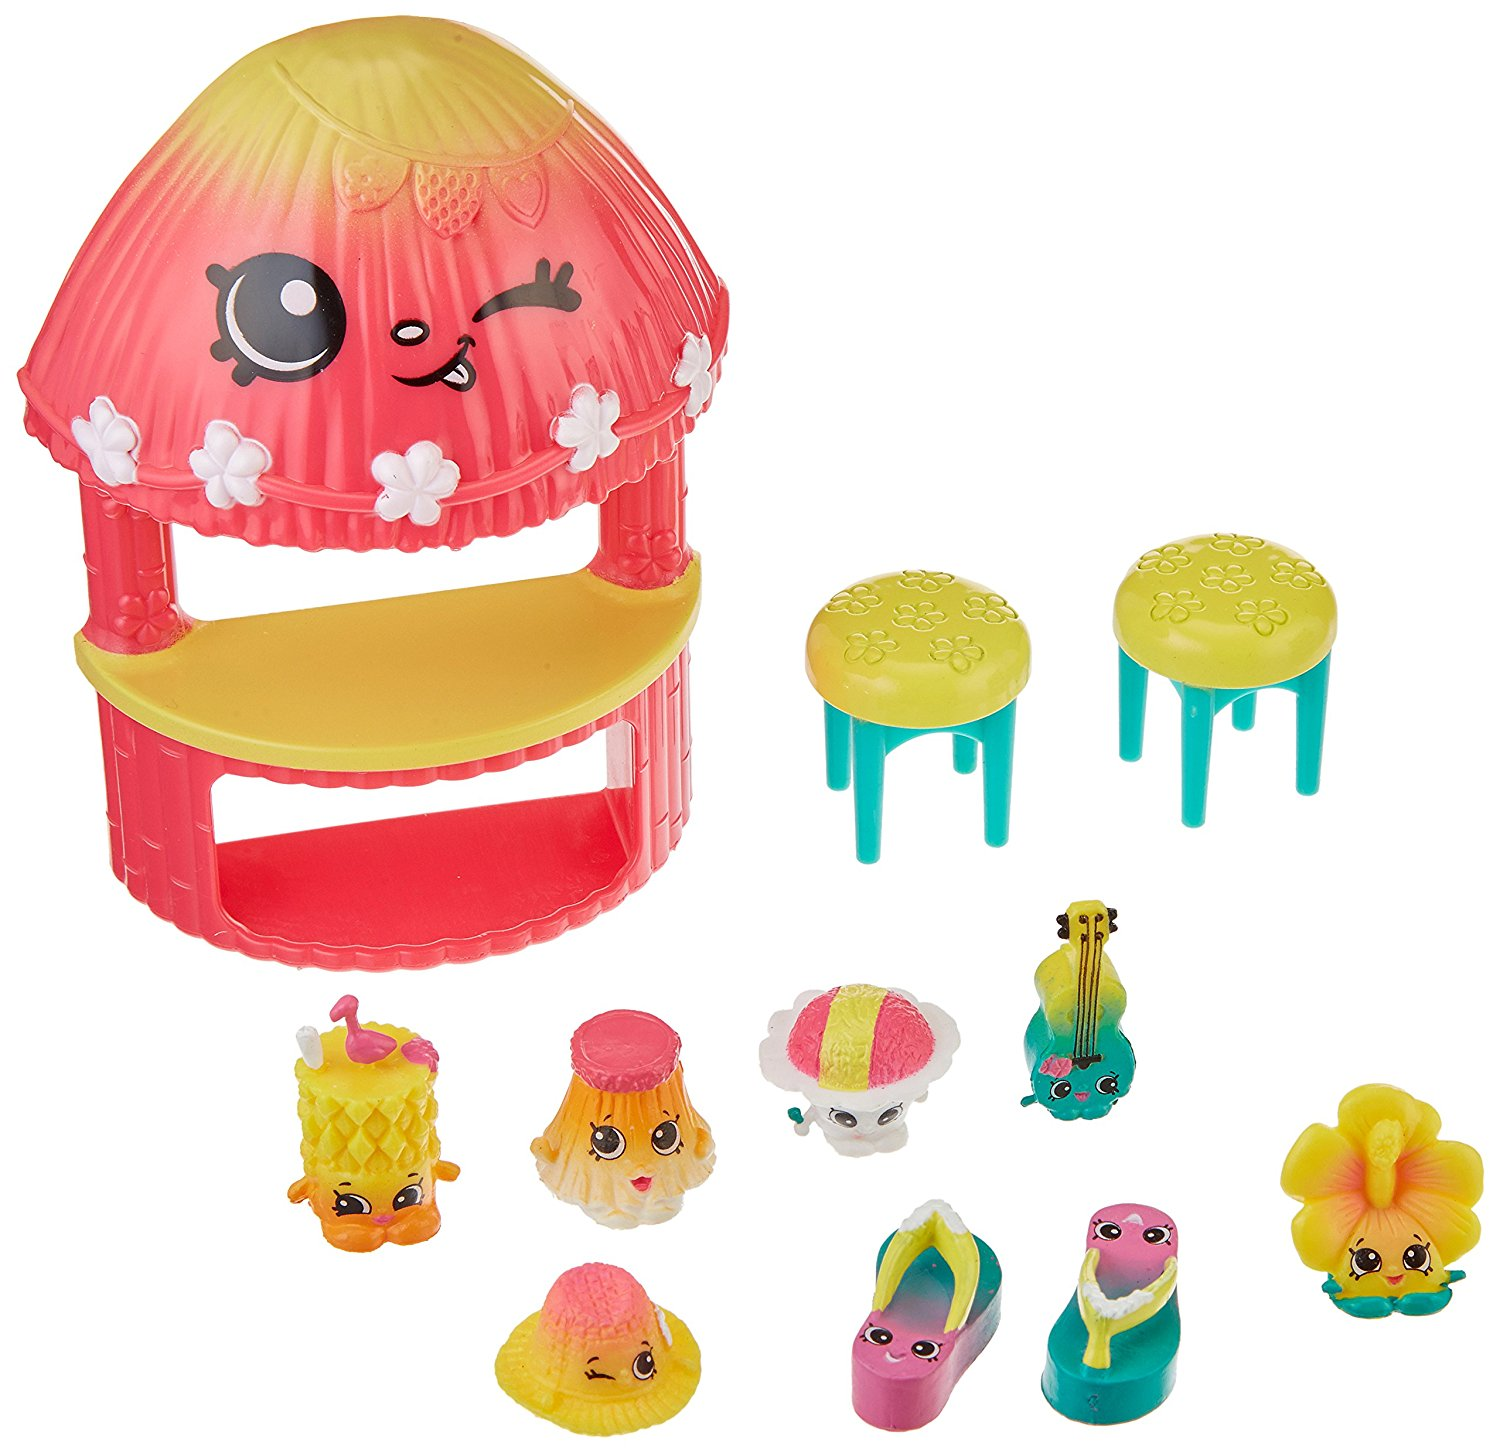 S4 Tropical Fashion Pack Collection, This pack contains 8 exclusive Sun Loving Shopkins with their Hula Hut and 2 stools By Shopkins